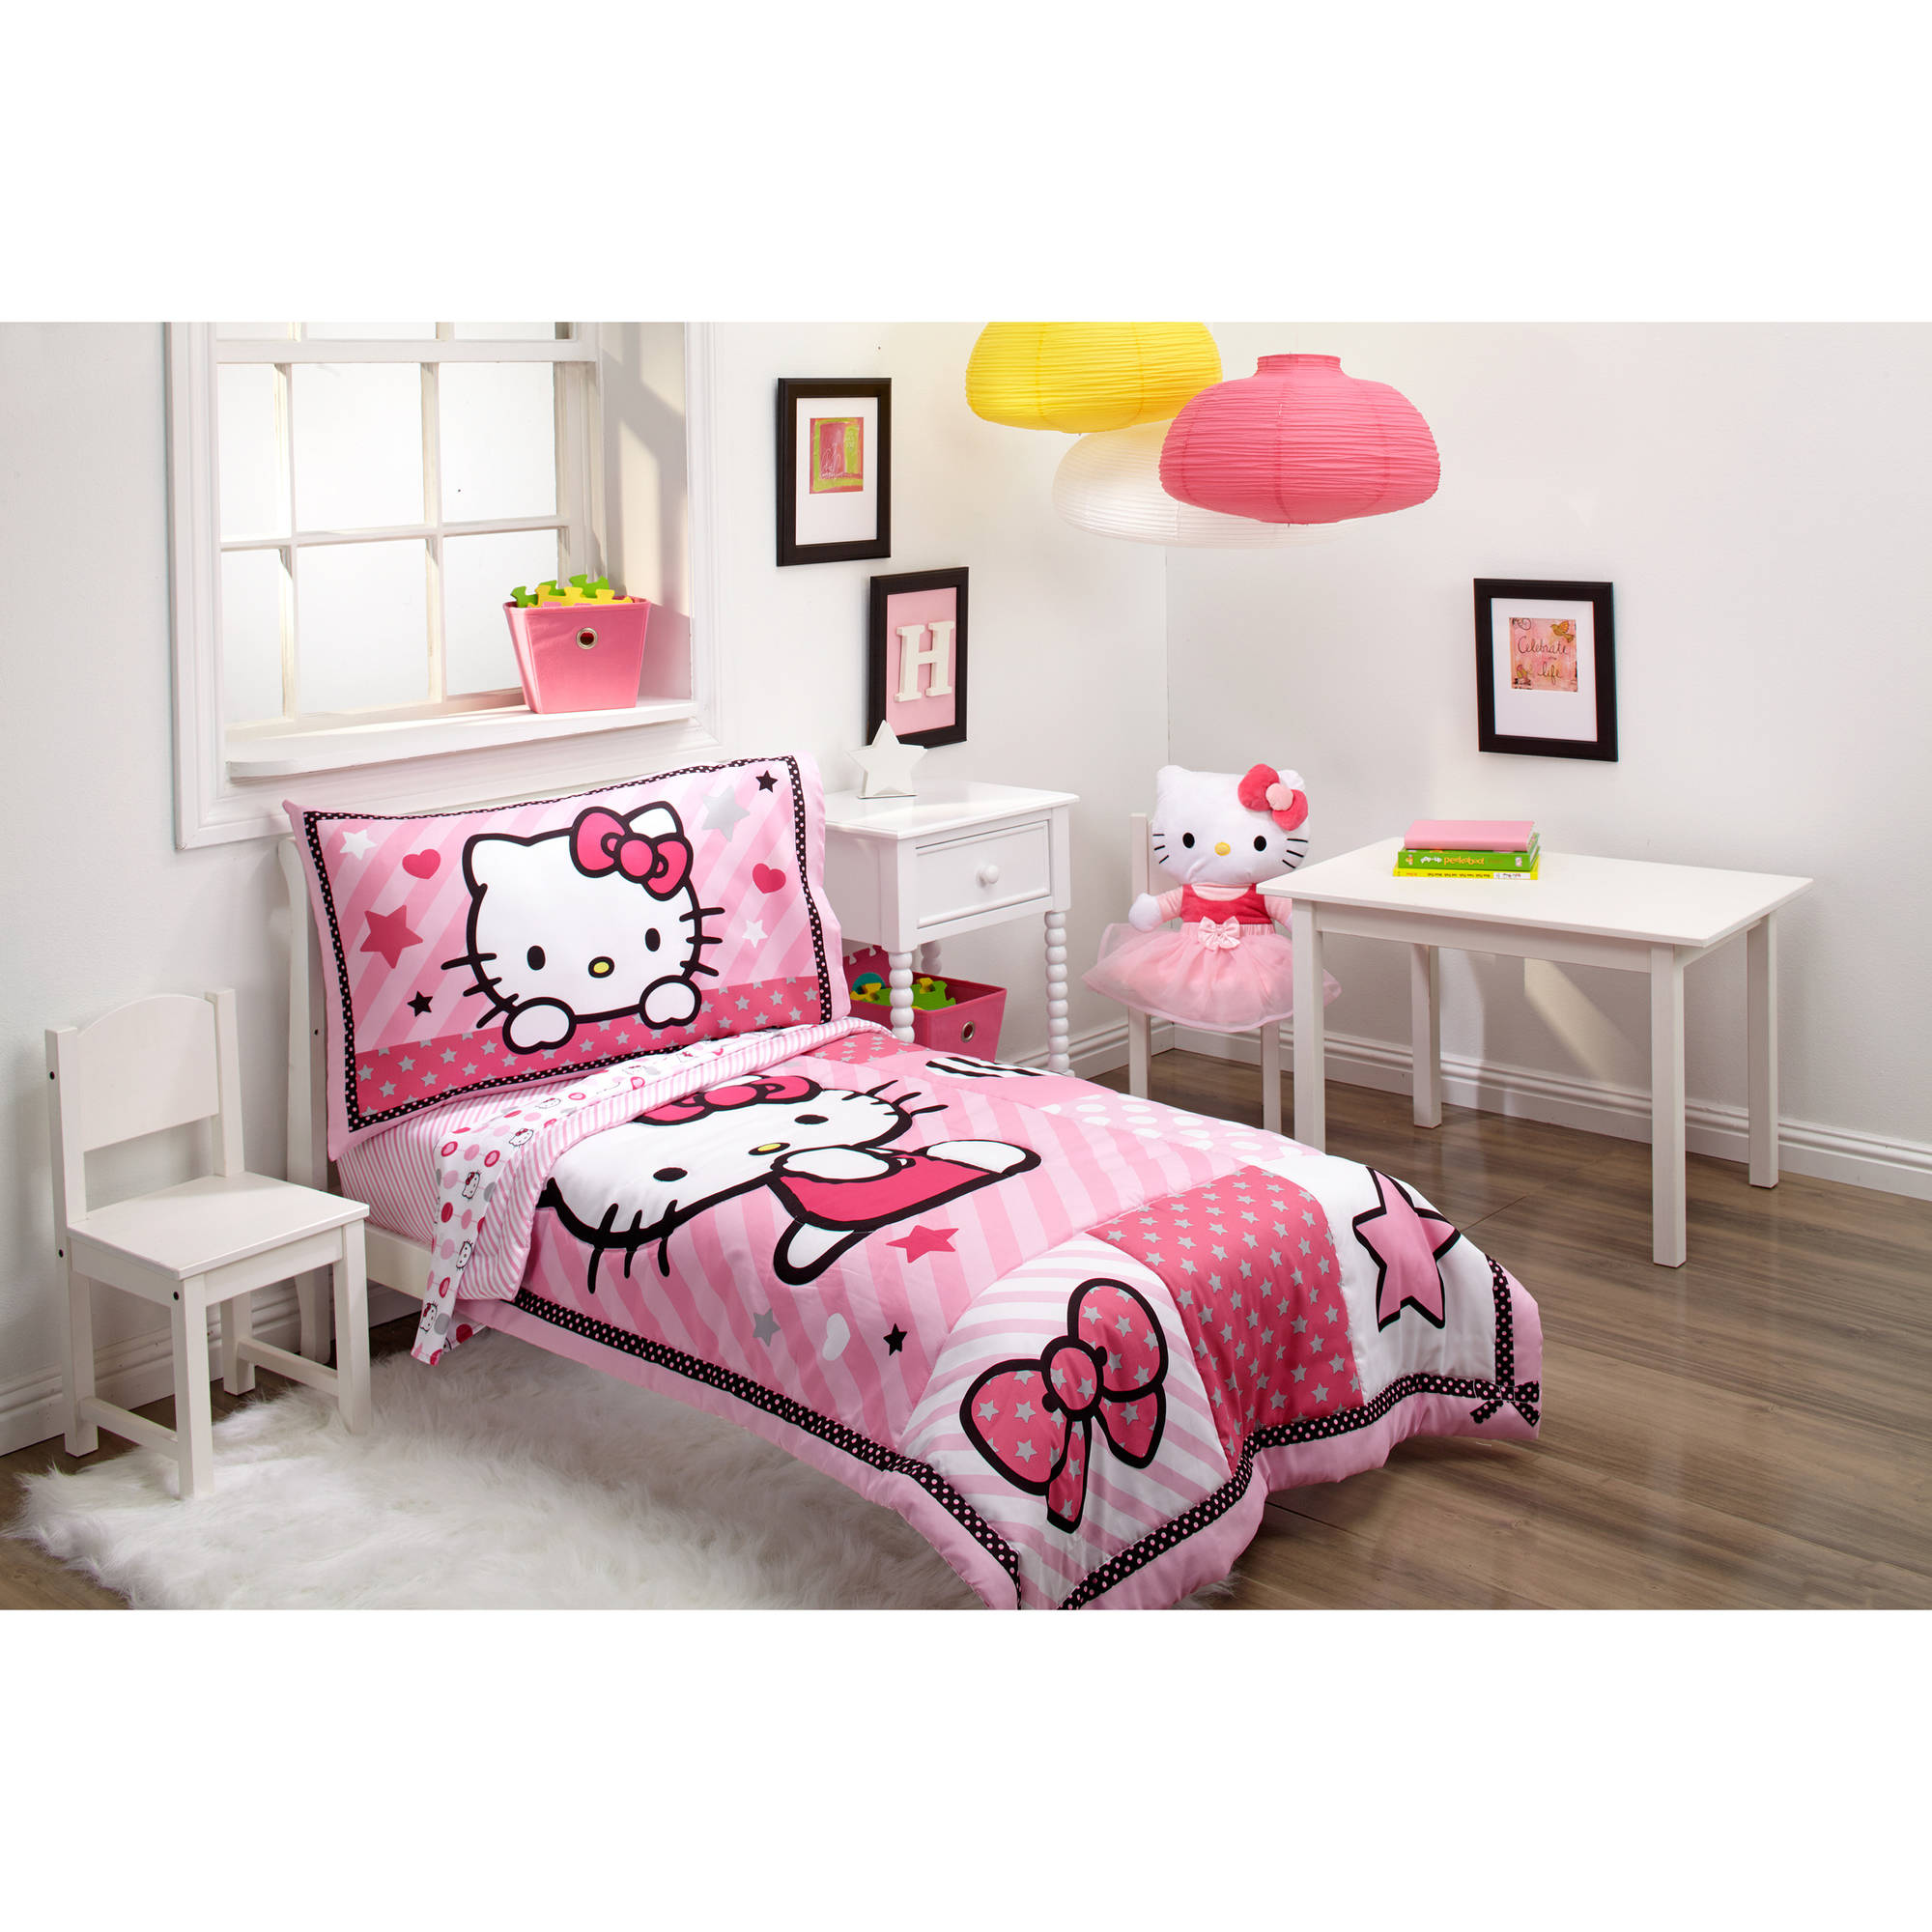 Hello Kitty Sweetheart 3-Piece Toddler Bedding Set with BONUS Matching Pillow Case